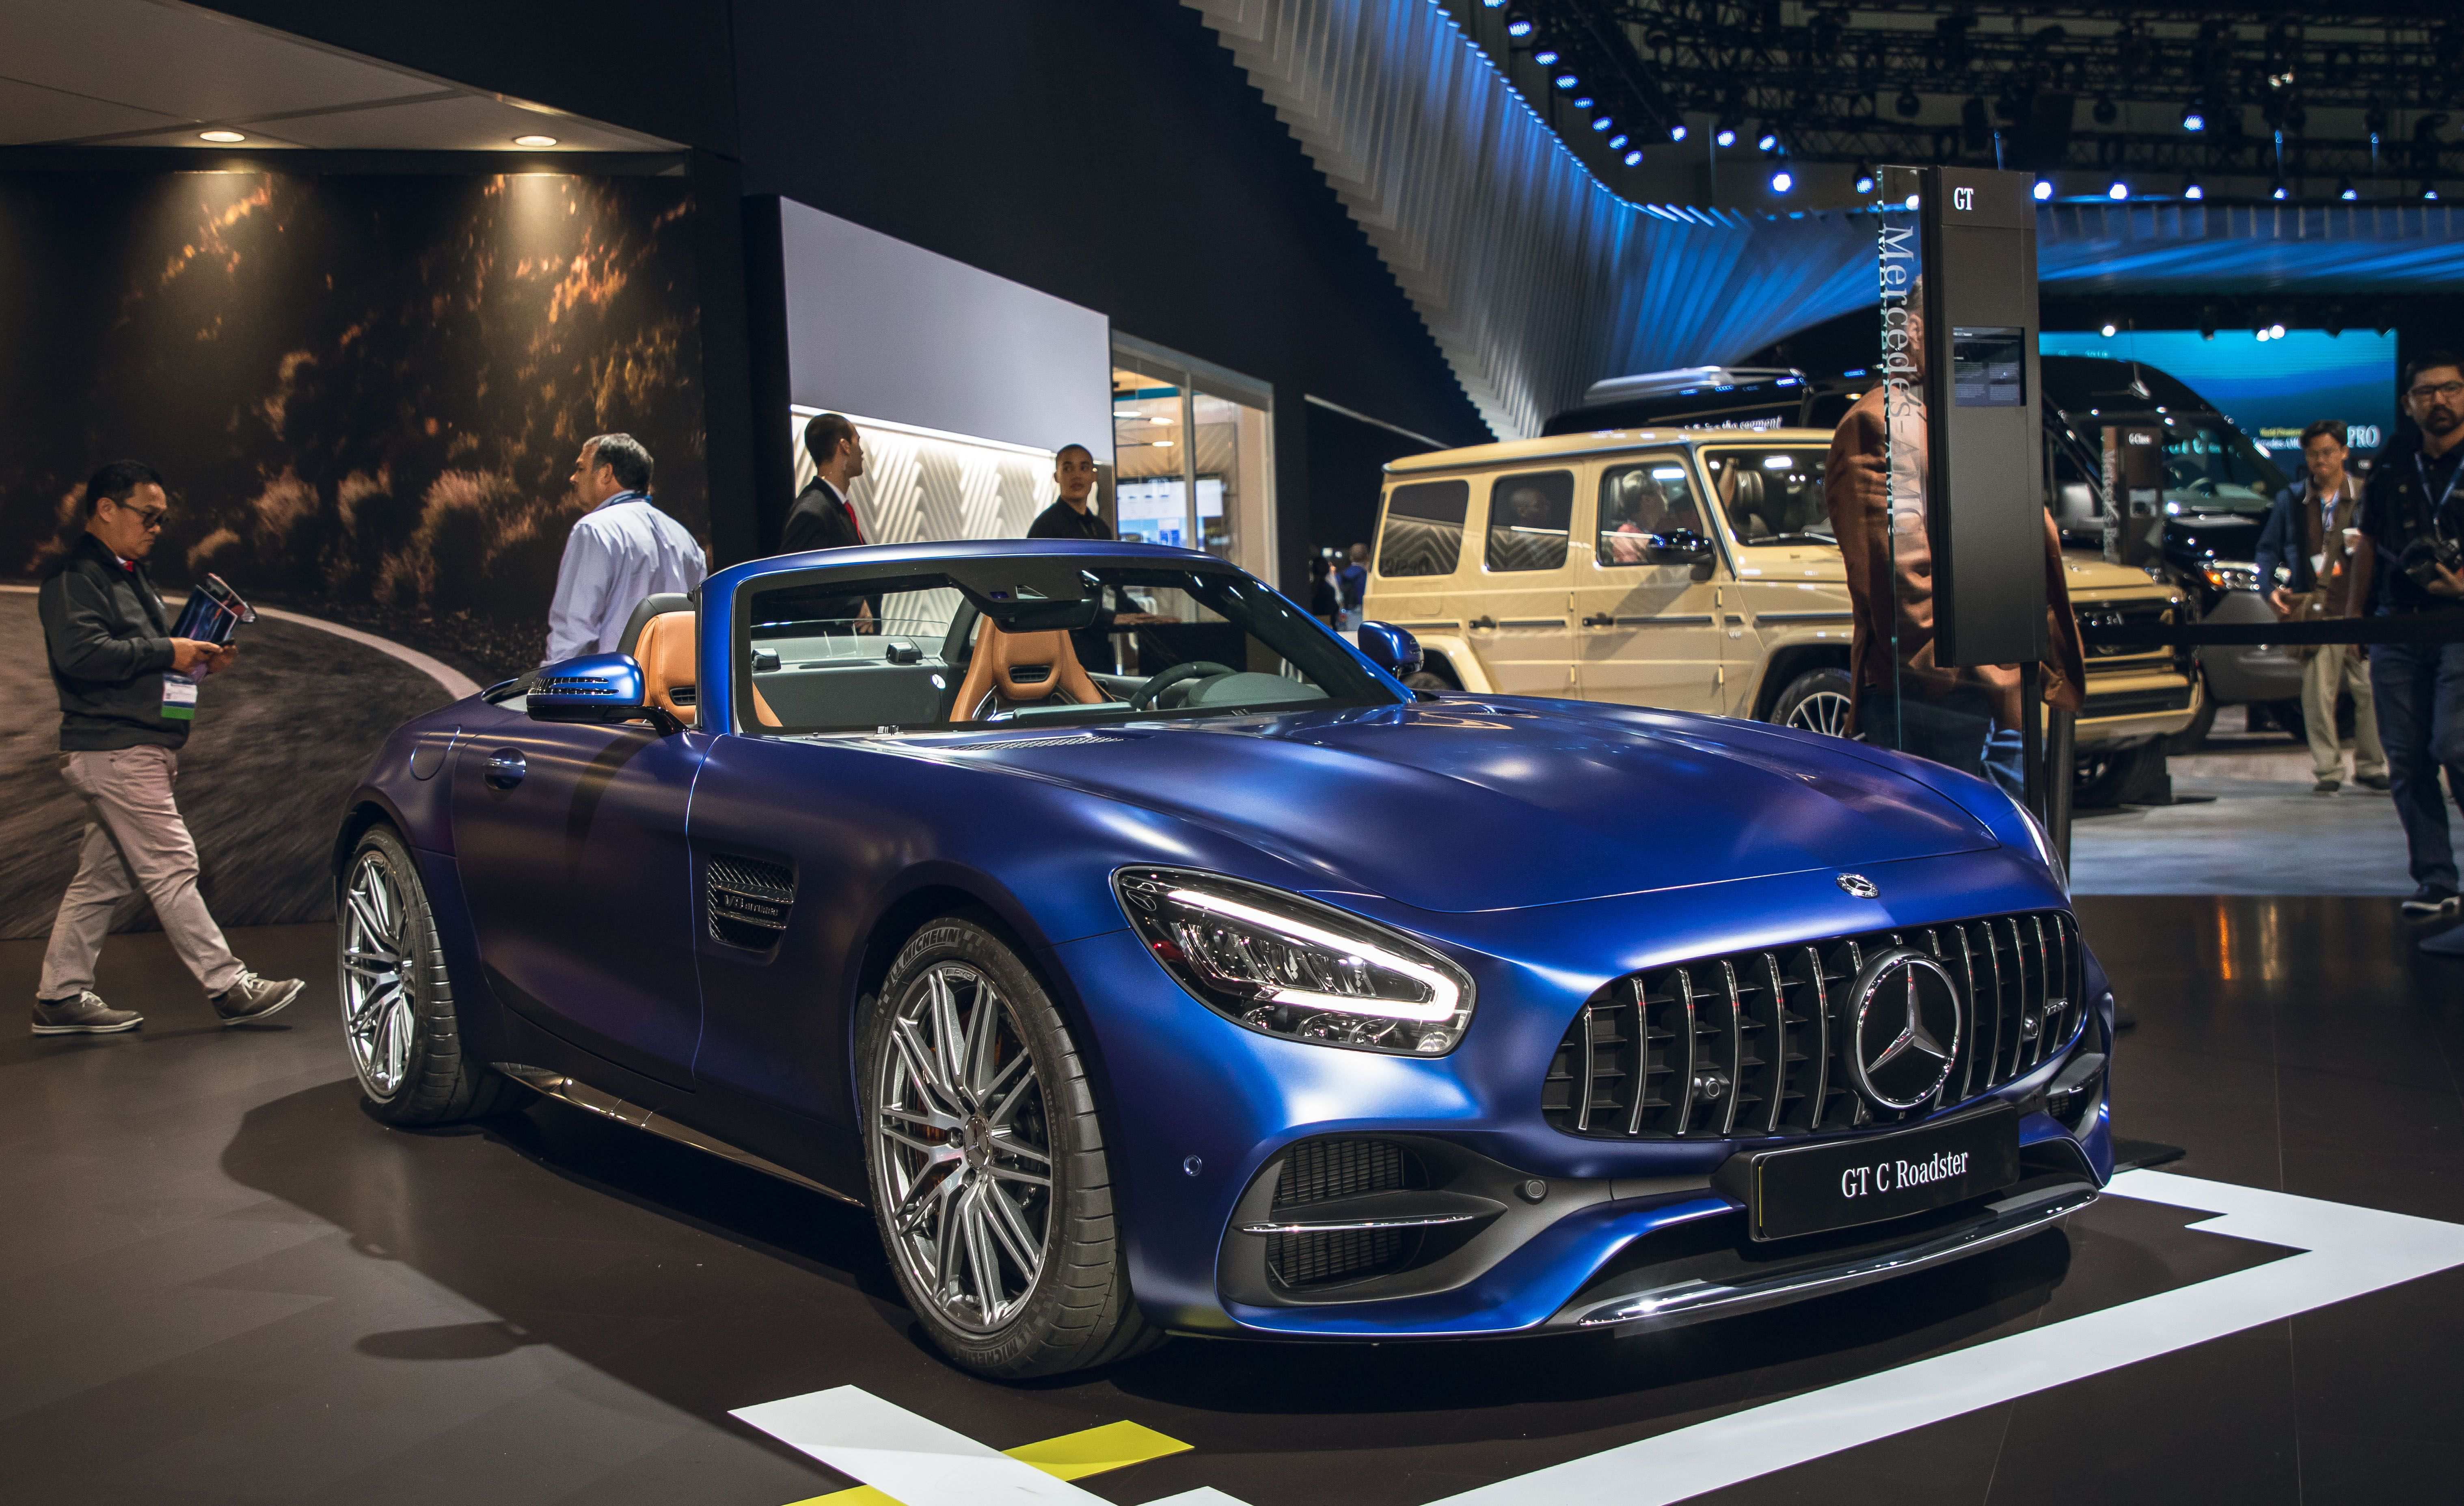 38 Concept of 2020 Mercedes Lineup Interior by 2020 Mercedes Lineup